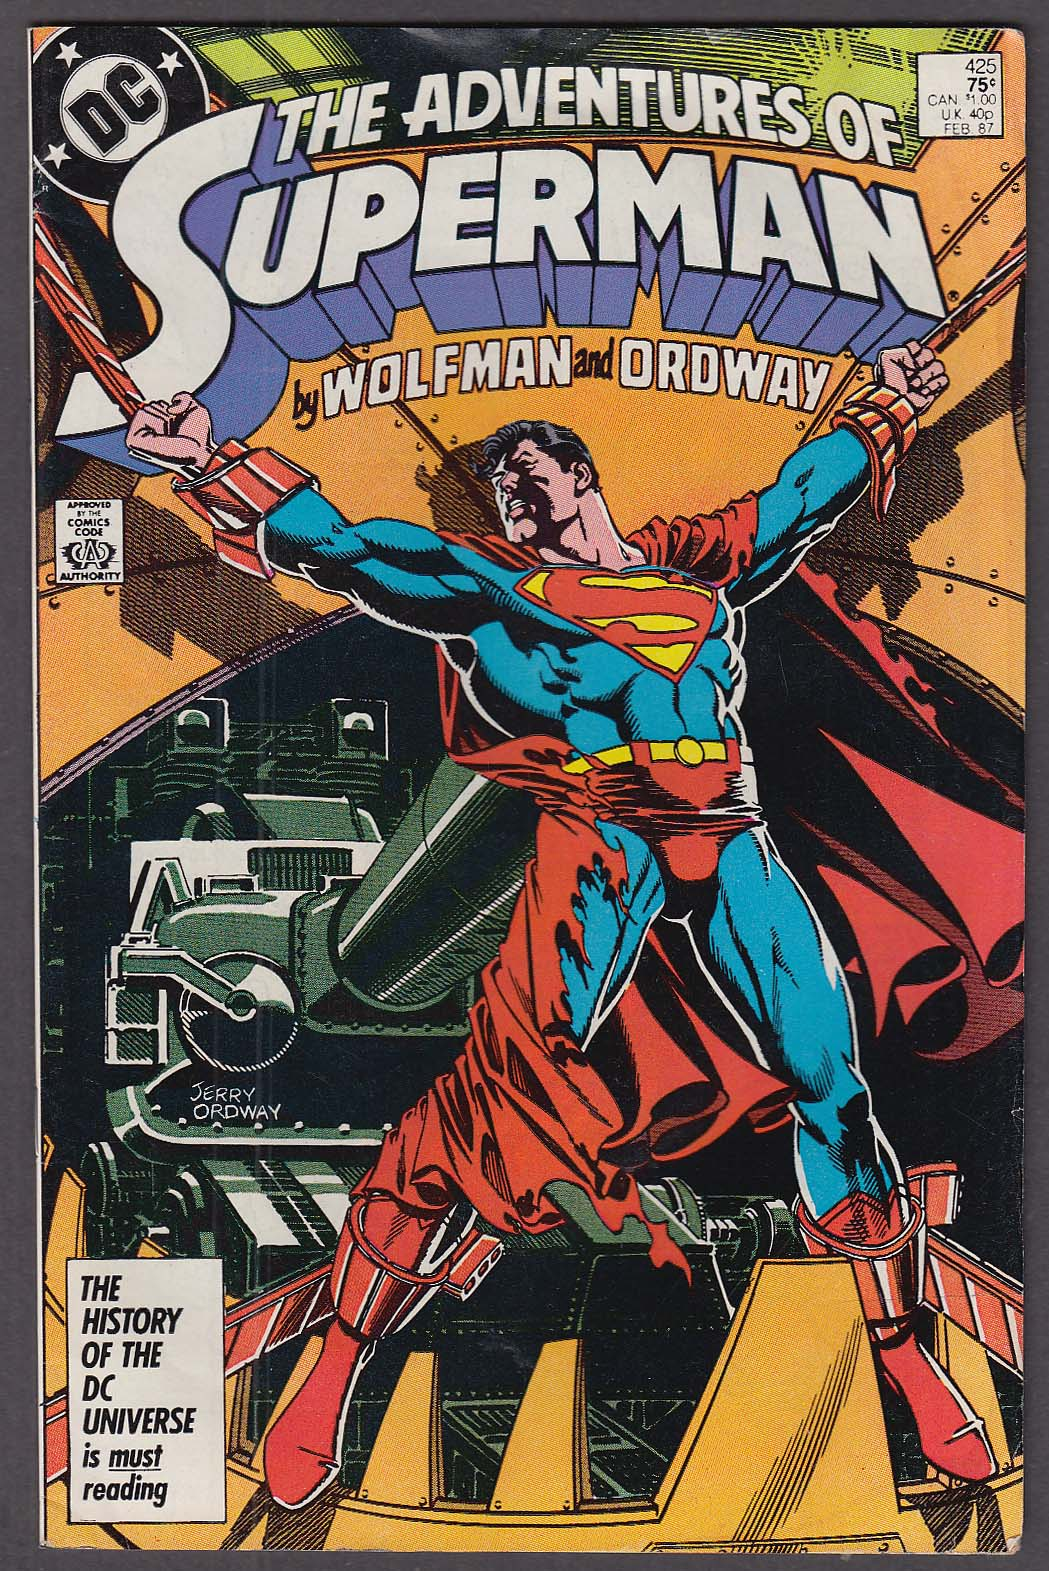 ADVENTURES of SUPERMAN #425 DC comic book 2 1987